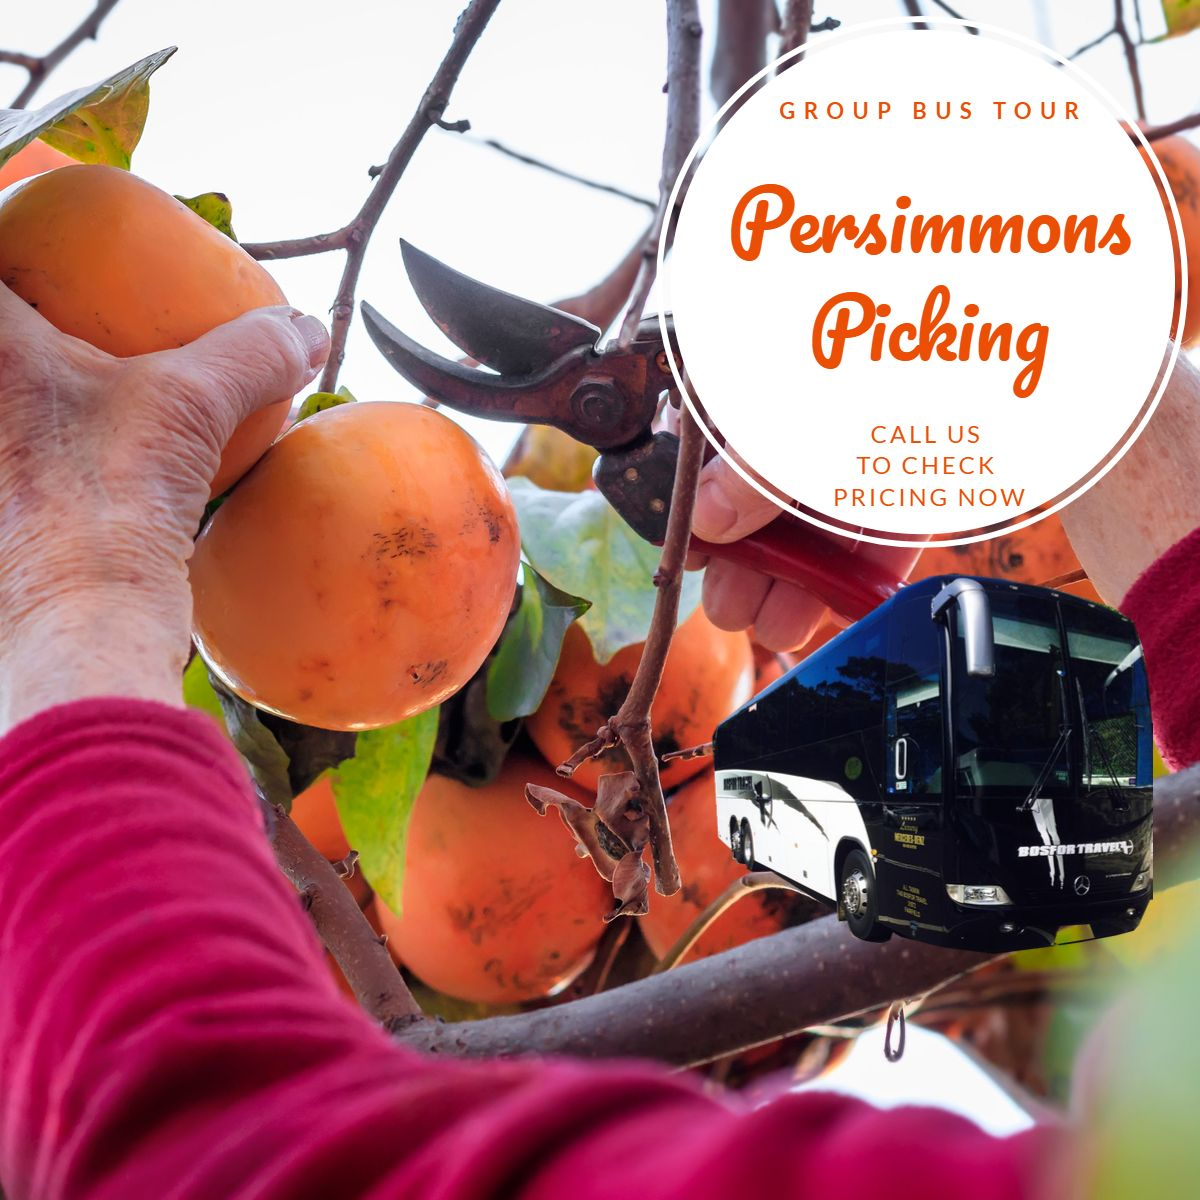 Persimmons Picking in April